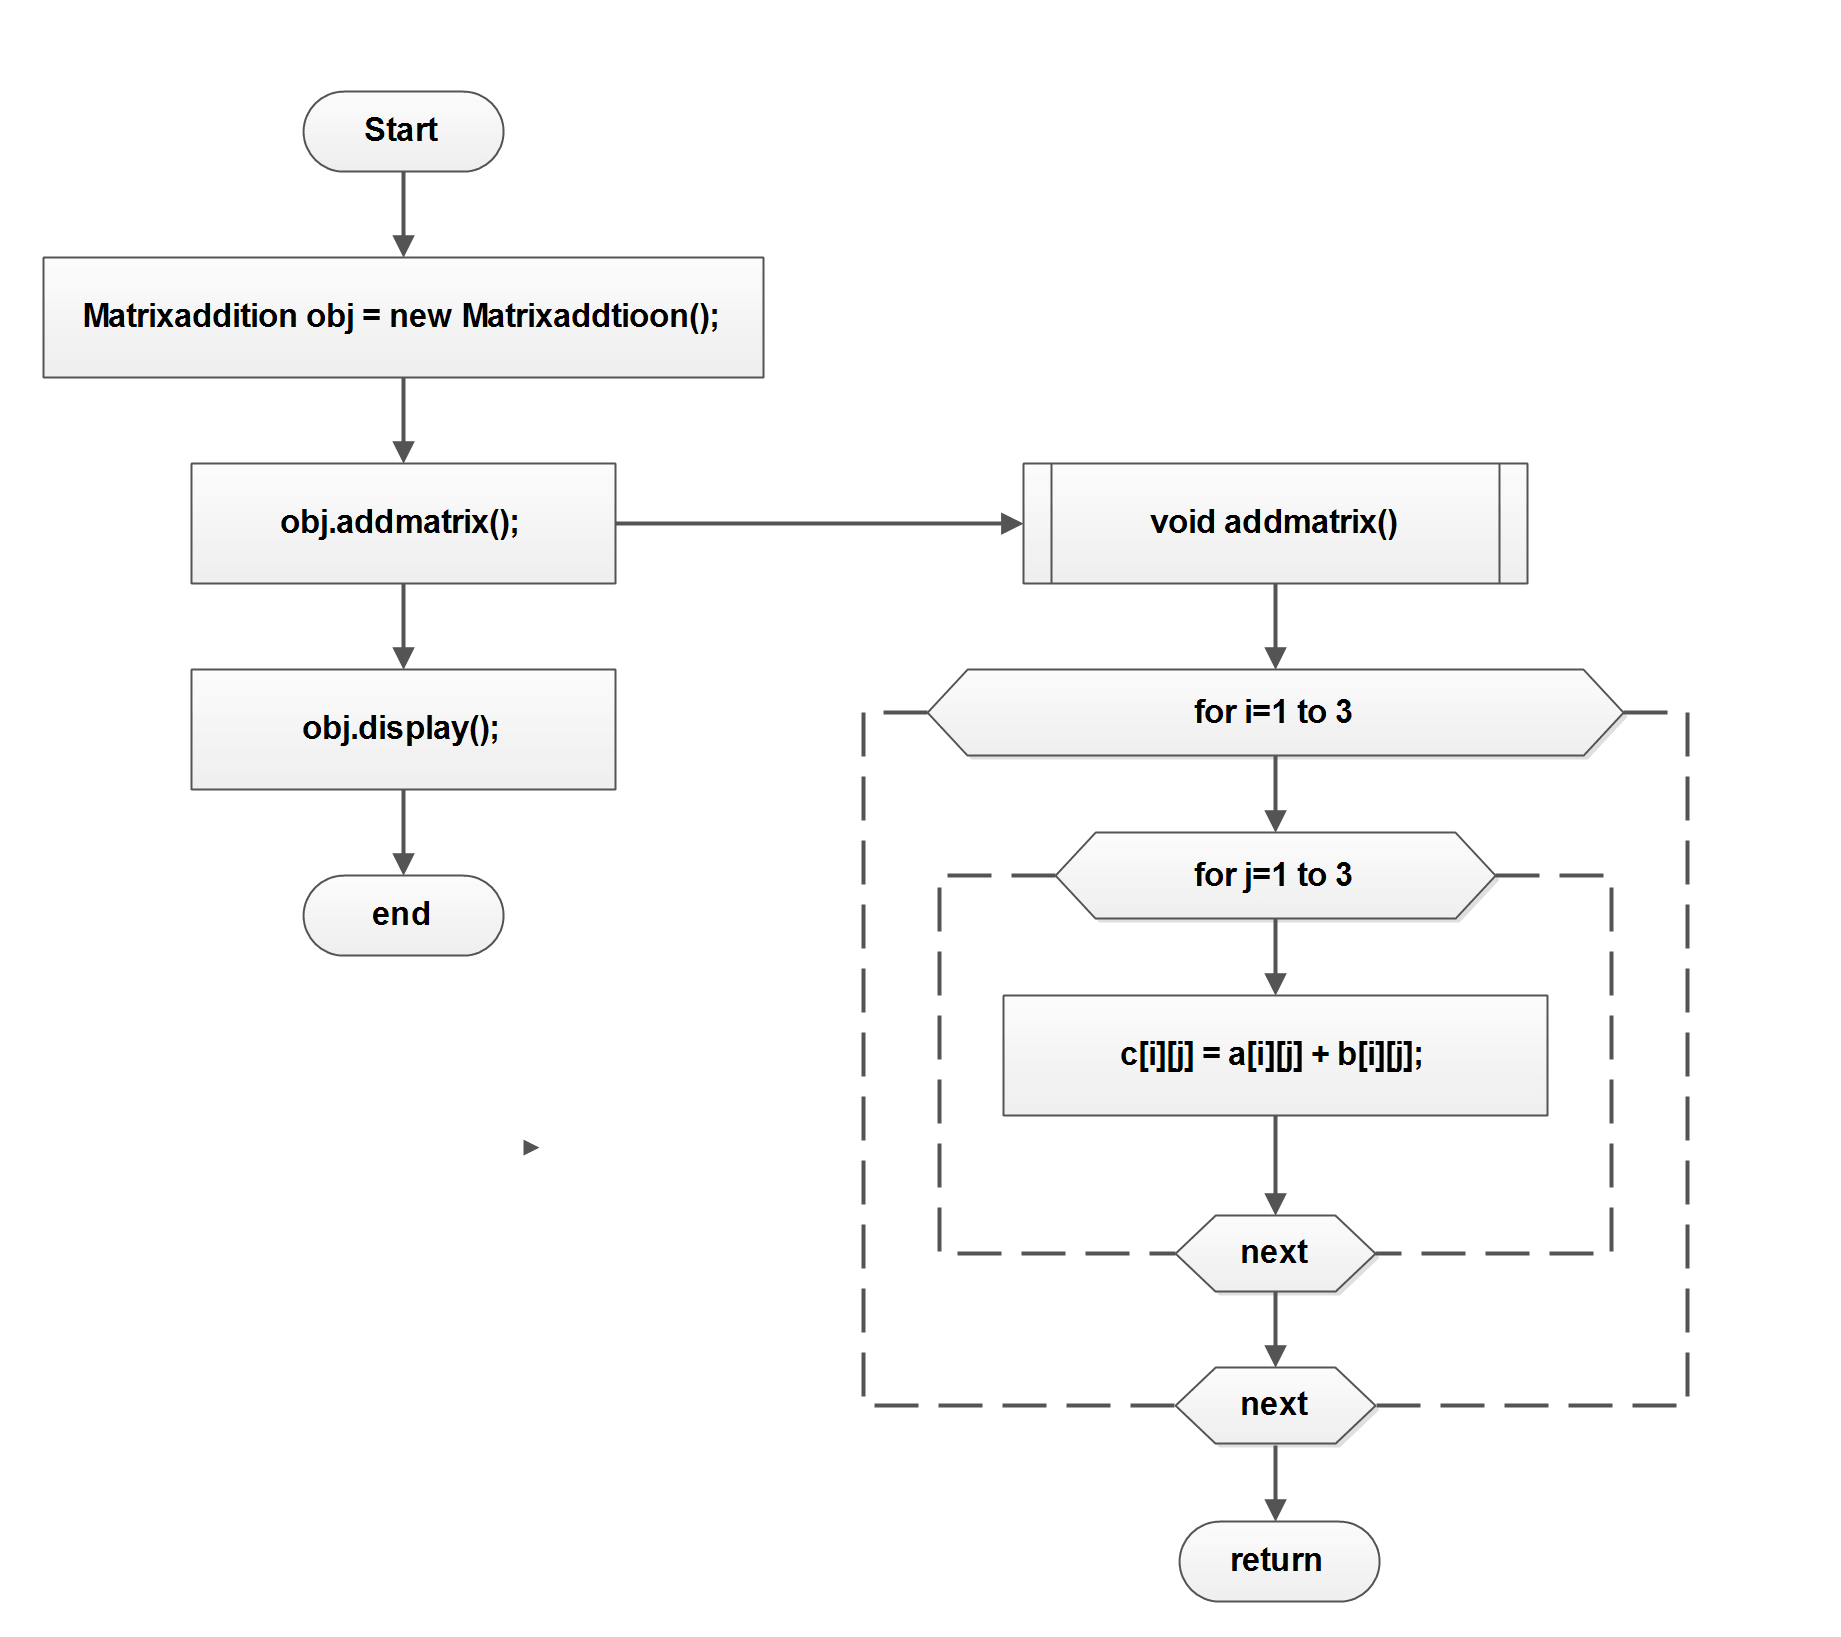 Figure 2: Flowchart for Program for Addition of Two Matrices